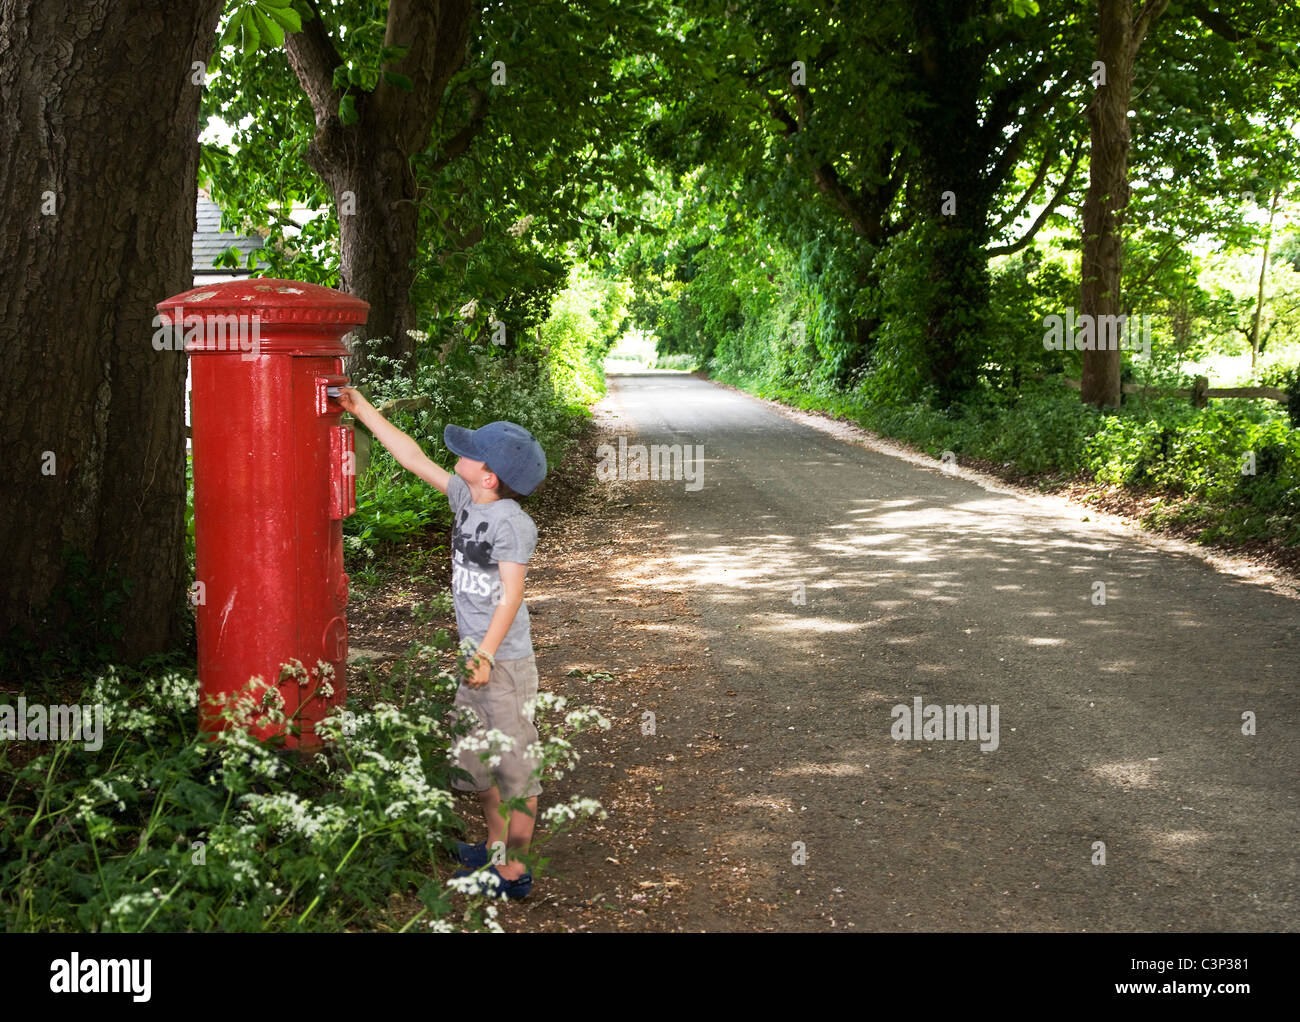 Child posting a letter in a country lane - Stock Image